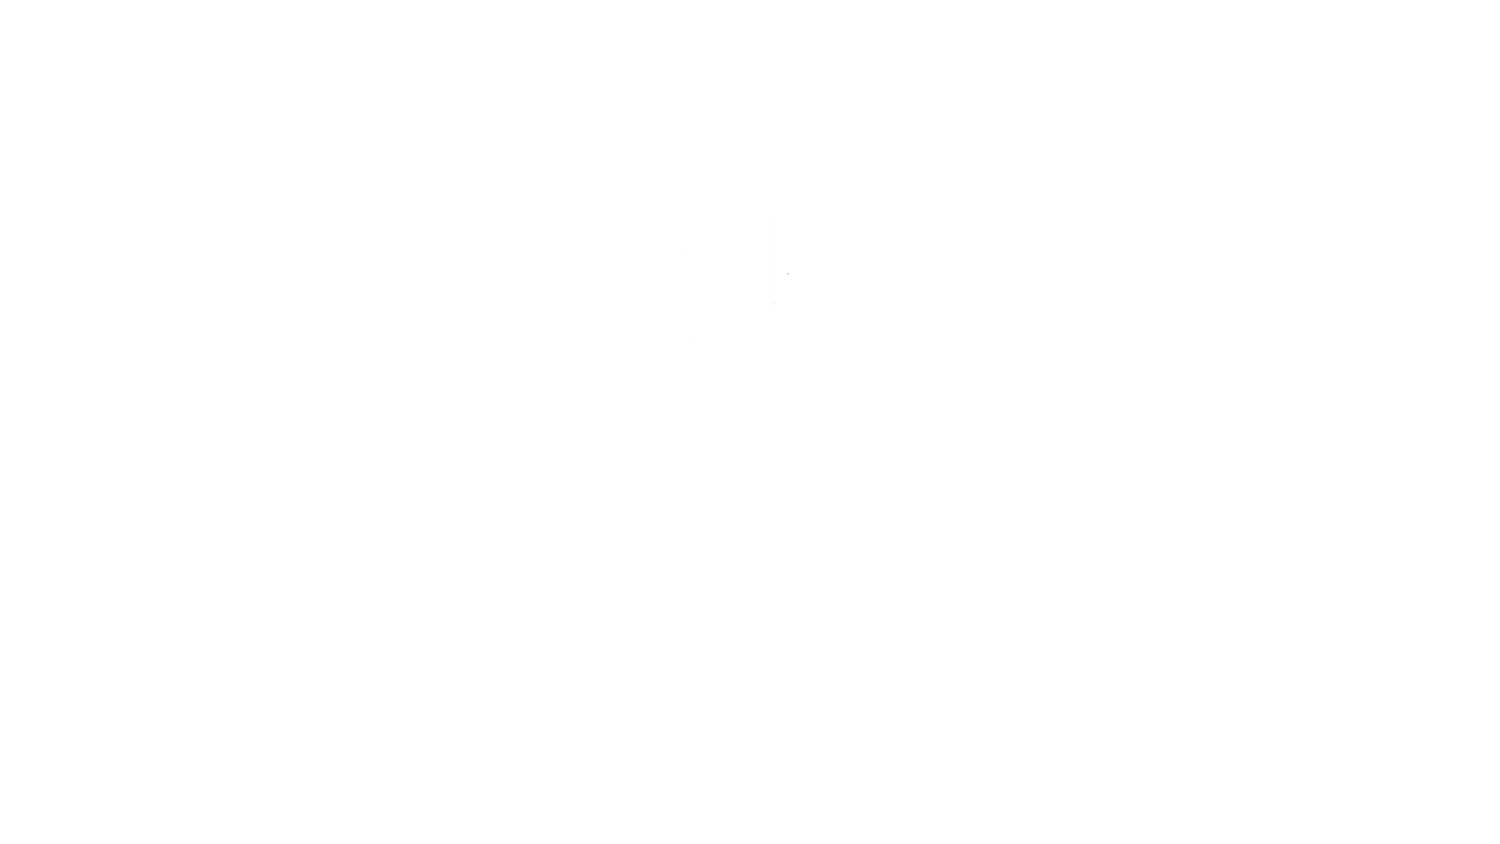 Brendan E Cryan & Co LLC